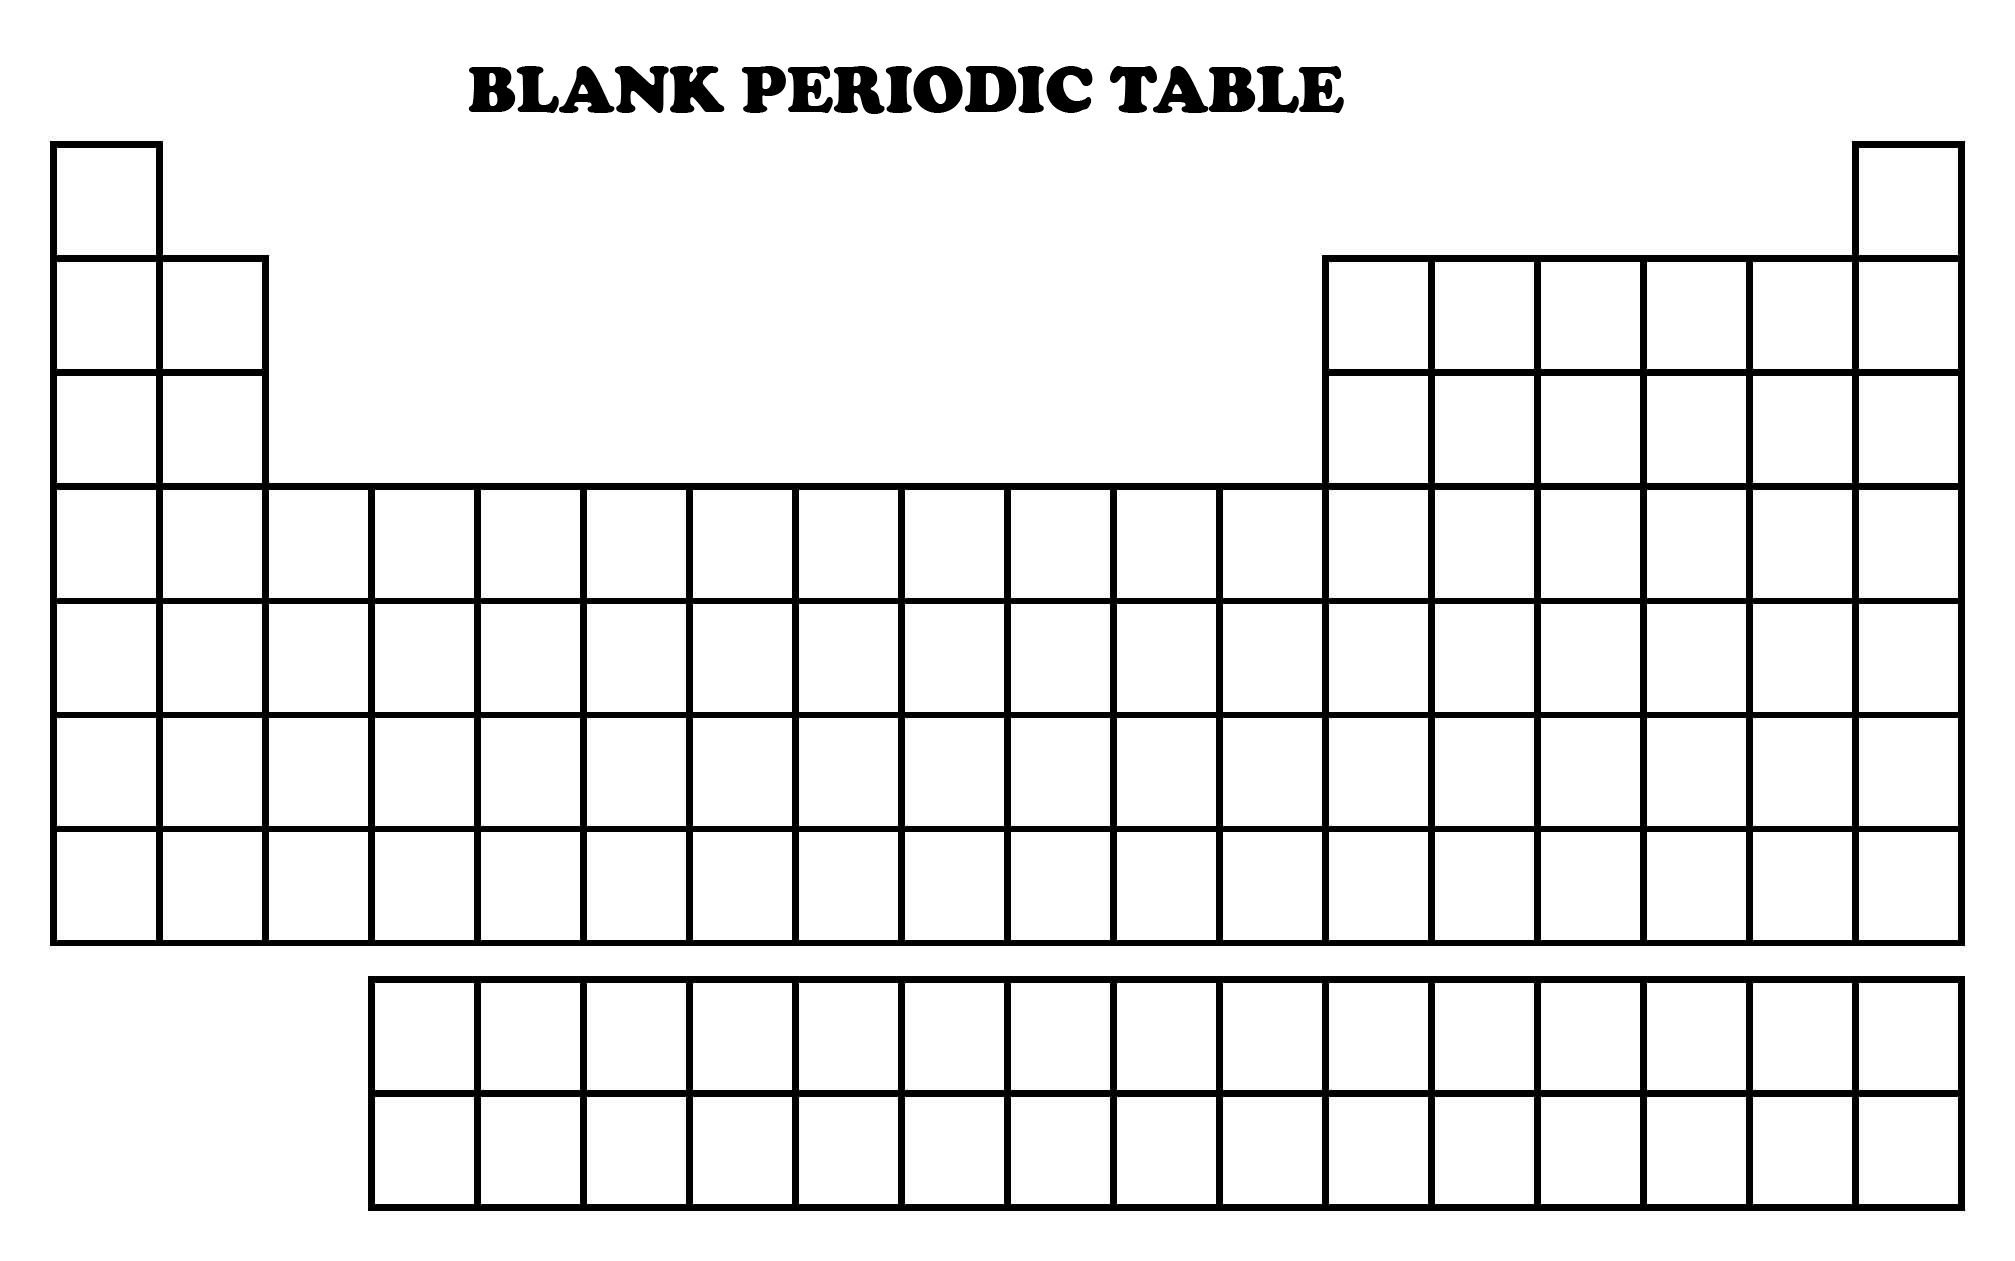 Periodic table blank classical conversations cycle 3 pinterest periodic table blank gamestrikefo Images